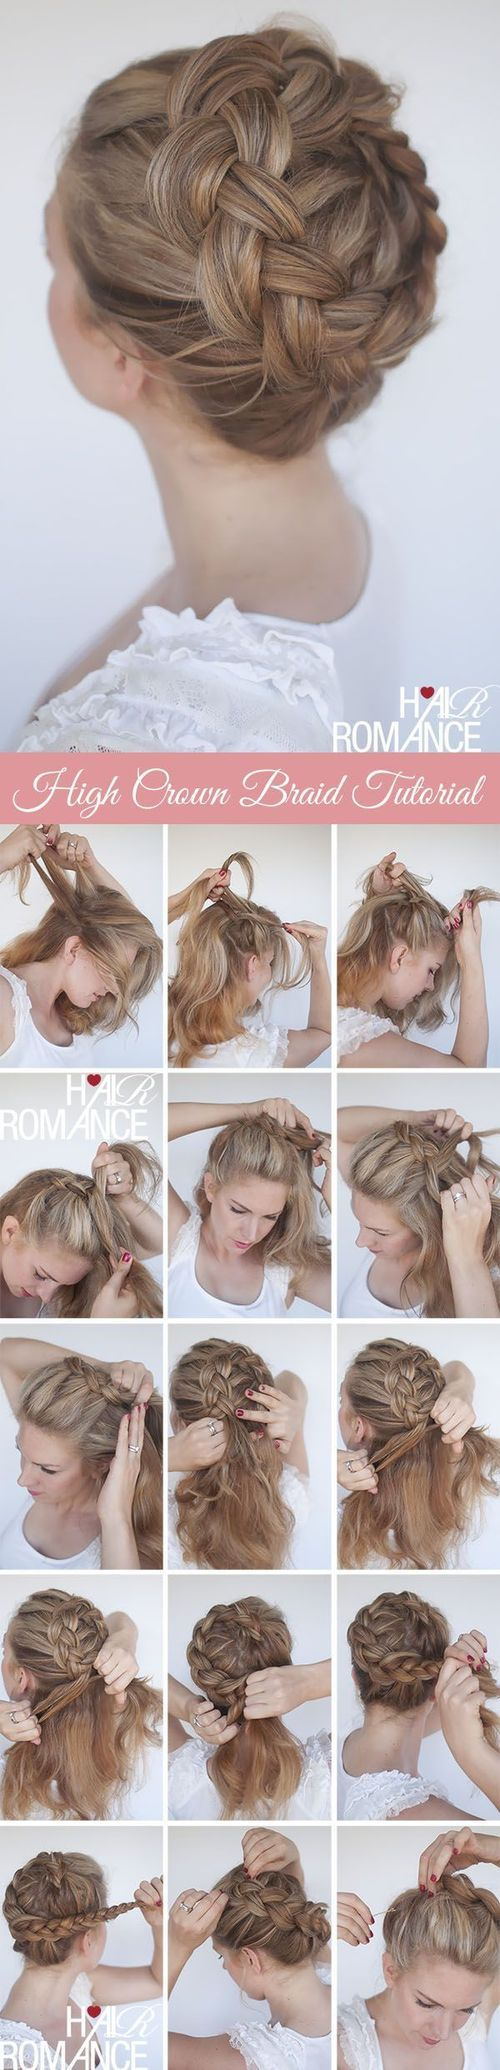 best hair u makeup images on pinterest bridal hairstyles